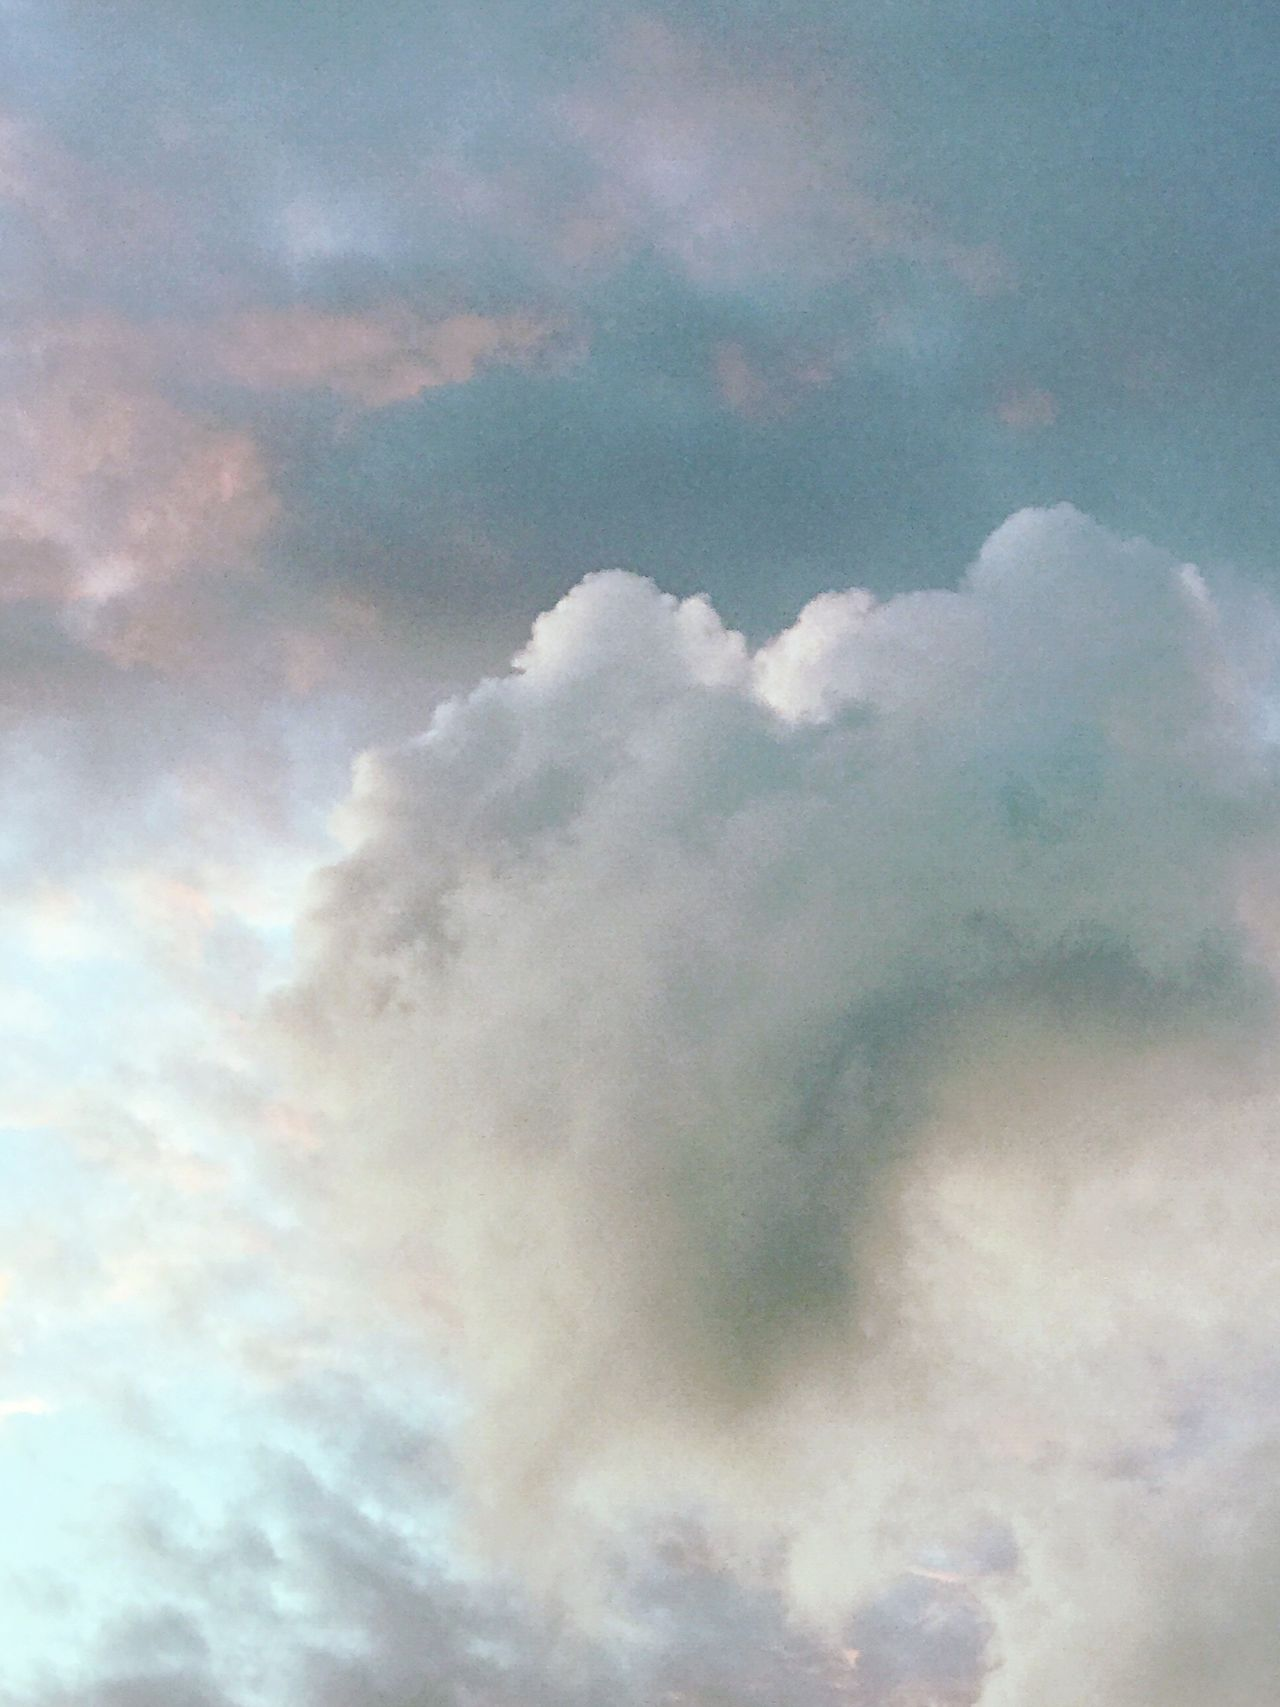 Cloud - Sky Sky Cloudscape Nature Sky Only Beauty In Nature Dramatic Sky Tranquility Majestic Low Angle View Backgrounds Abstract Heaven Scenics No People Tranquil Scene Outdoors Day